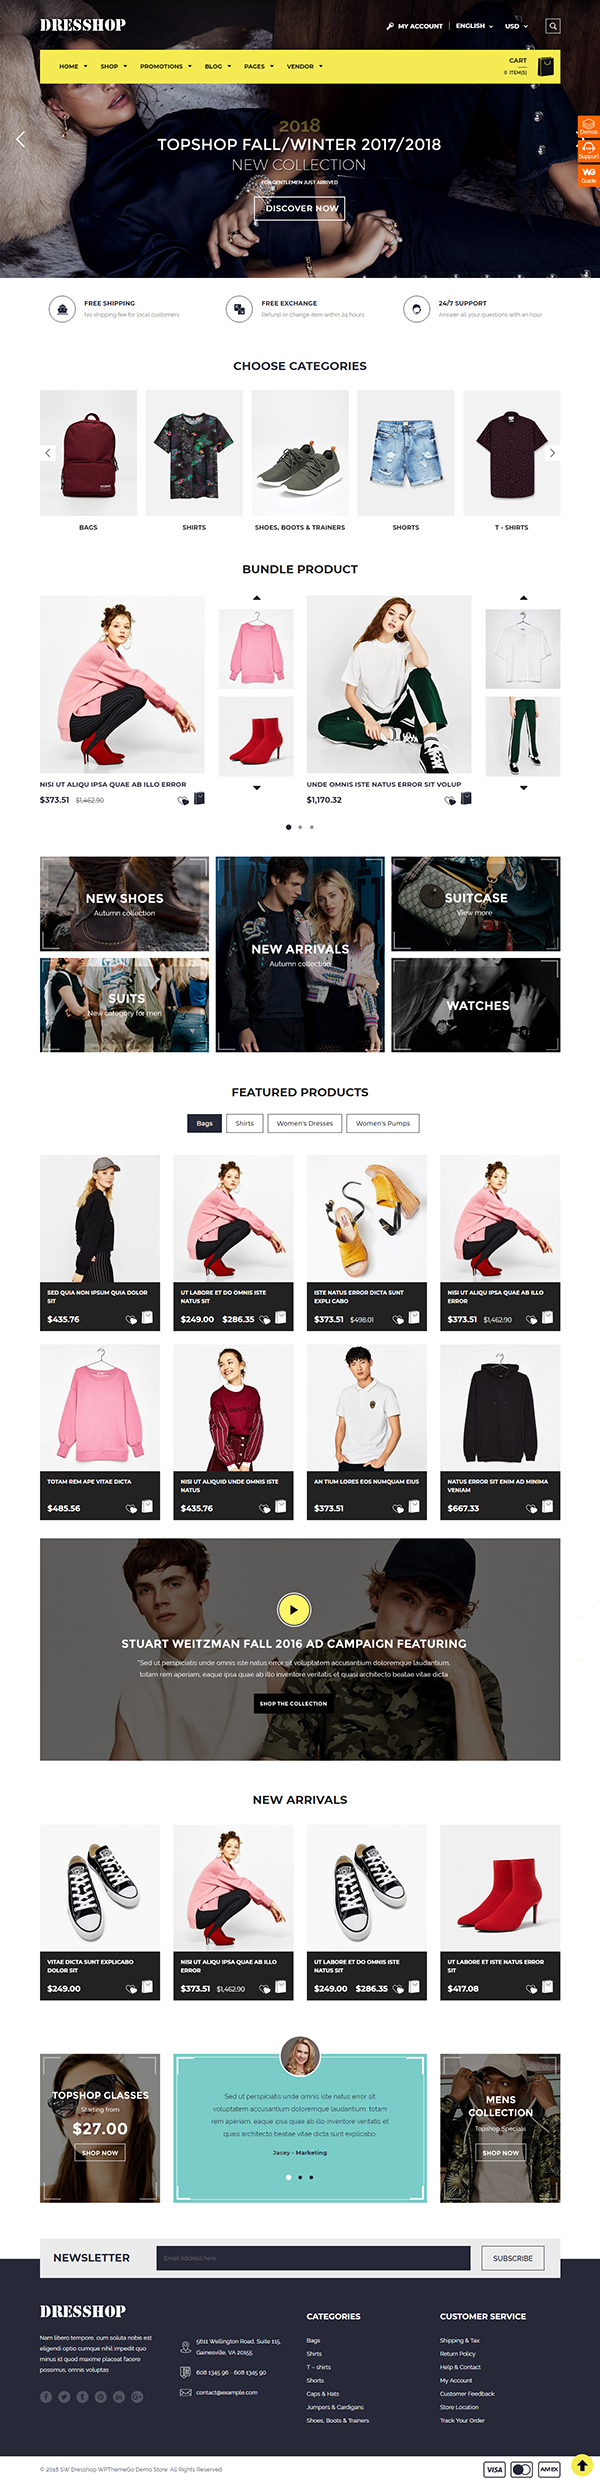 DresShop - Fashion WooCommerce Theme